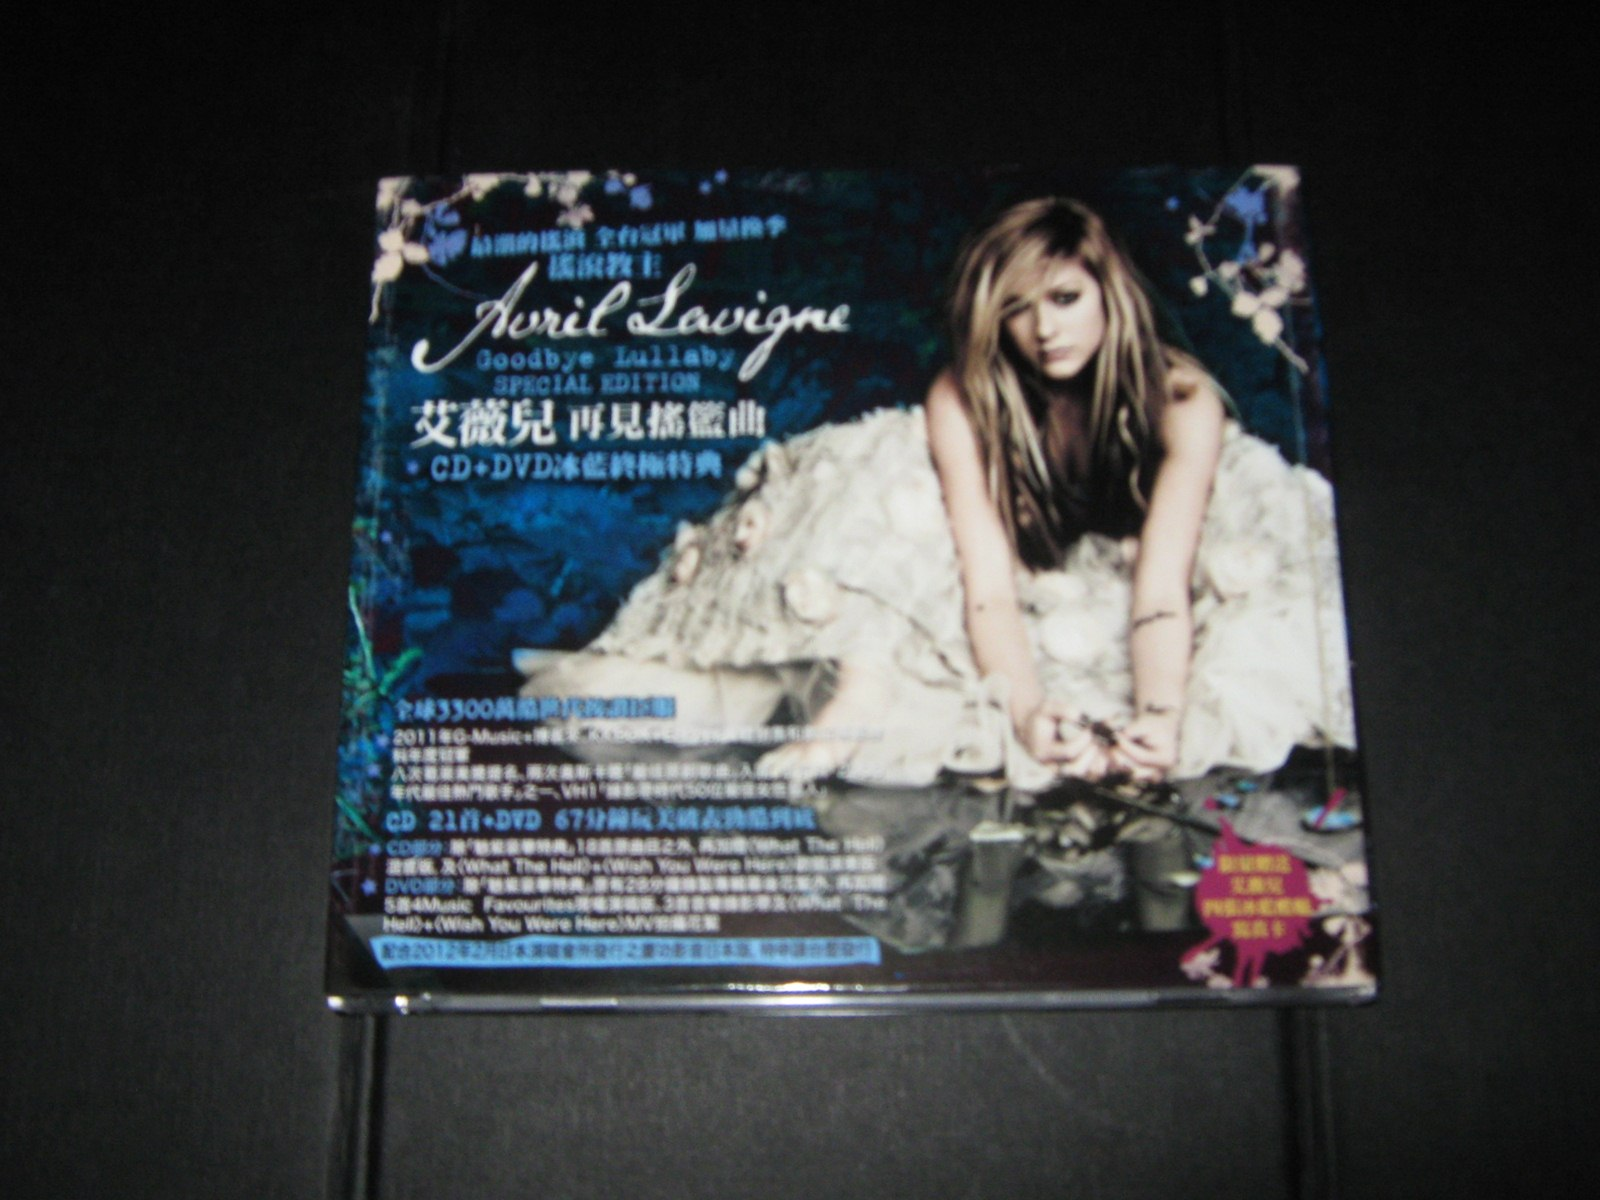 Jomaab avril lavigne s collection goodbye lullaby special